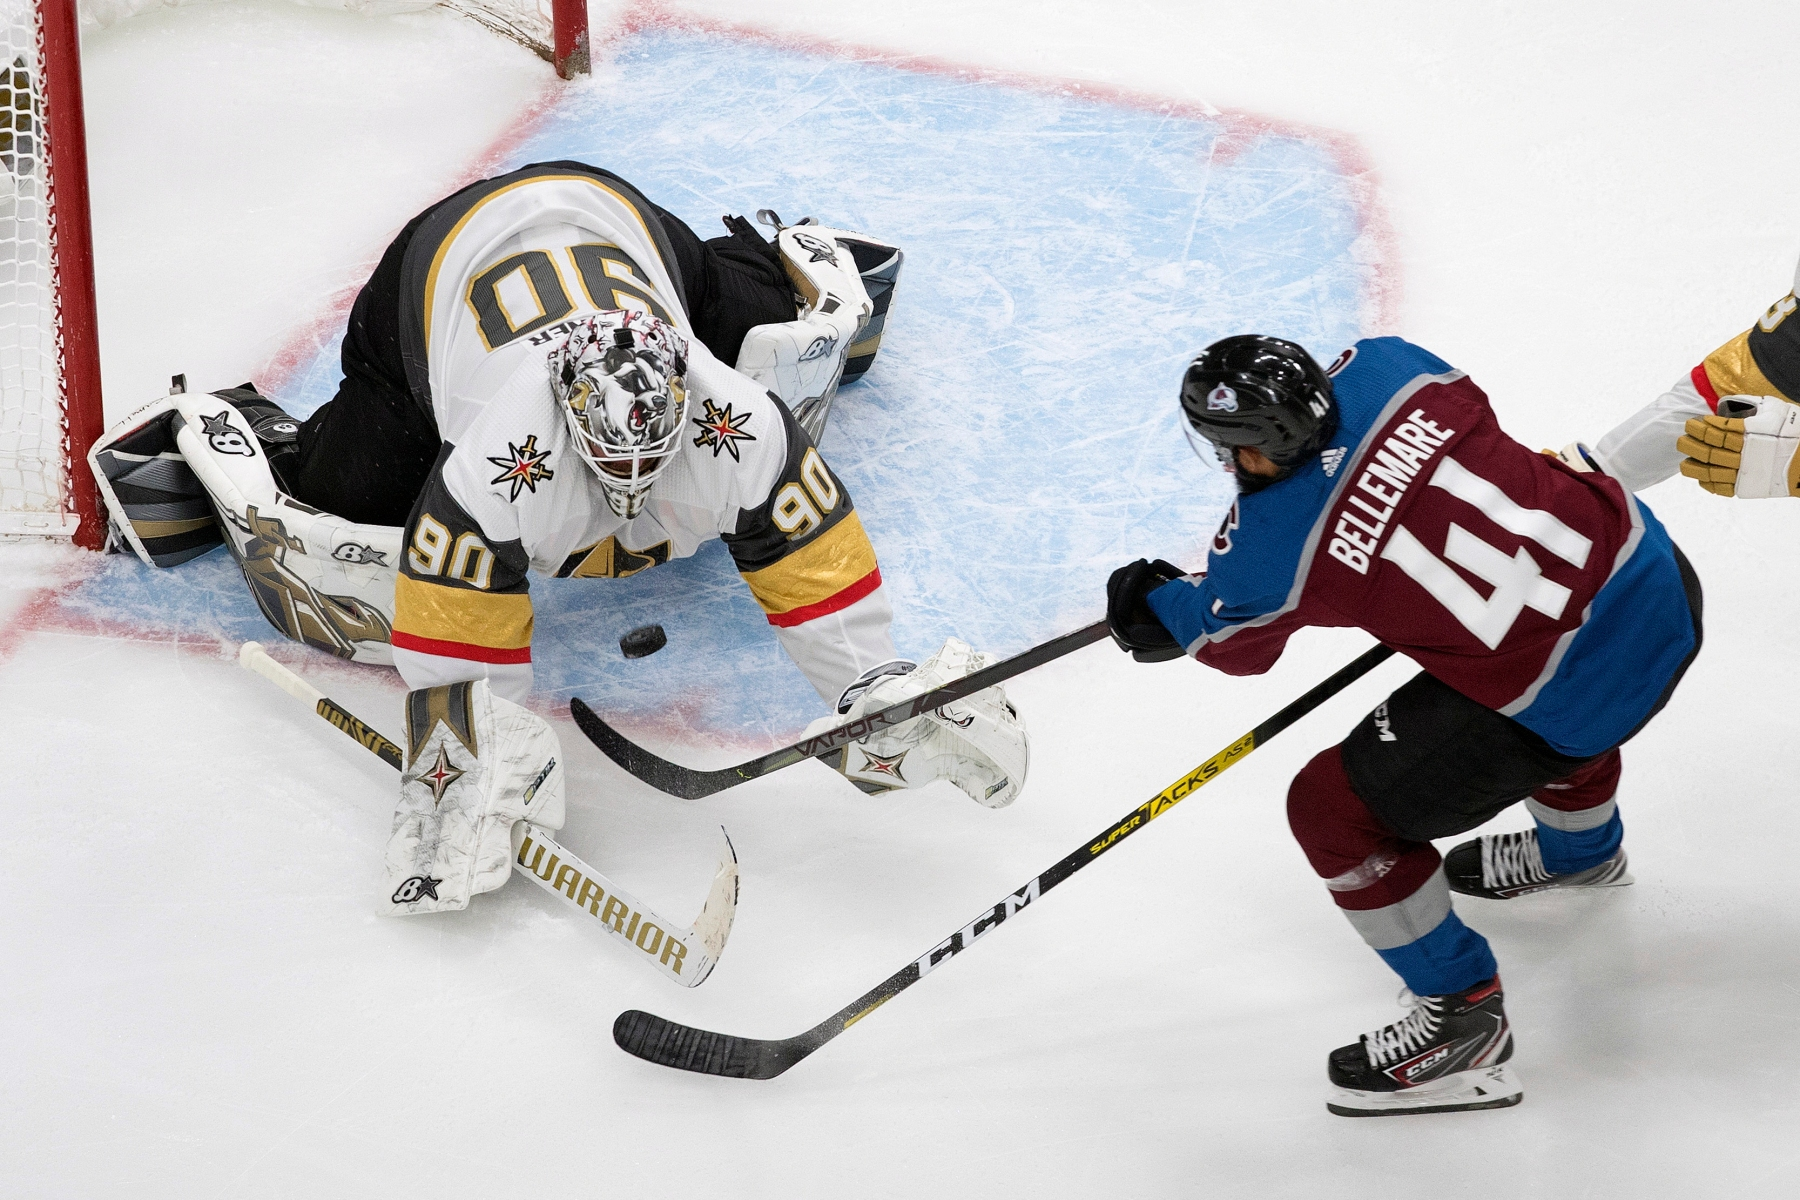 Nhl Live Stream How To Watch 2020 Hockey Playoff Games Online Free Rolling Stone